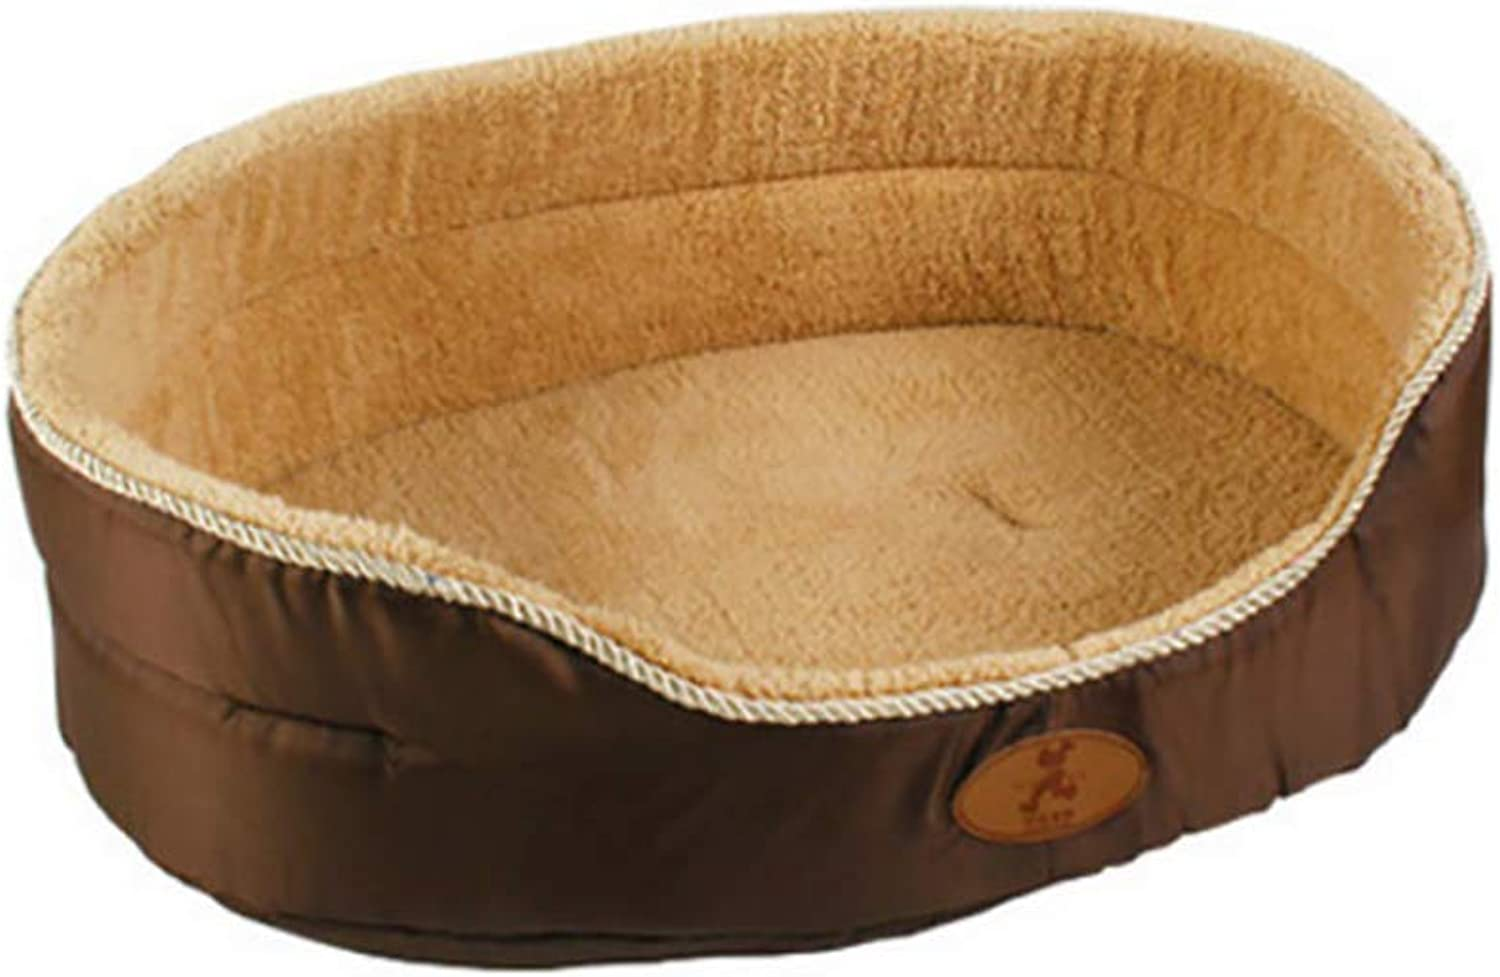 Deluxe Cozy Pet Bed Ultra Soft Comfortable Dog Bed, Washable Short Plush Cushion Warm Luxury Pet Basket,B,L